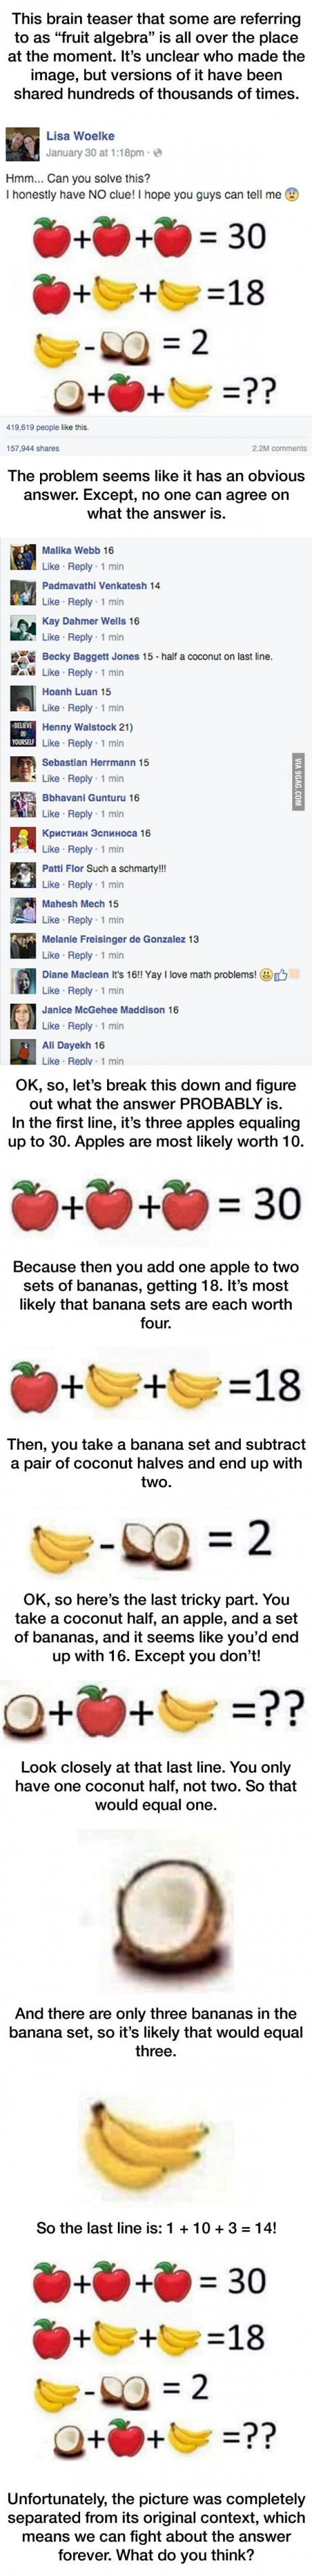 Fruit Algebra Is Driving People Crazy!